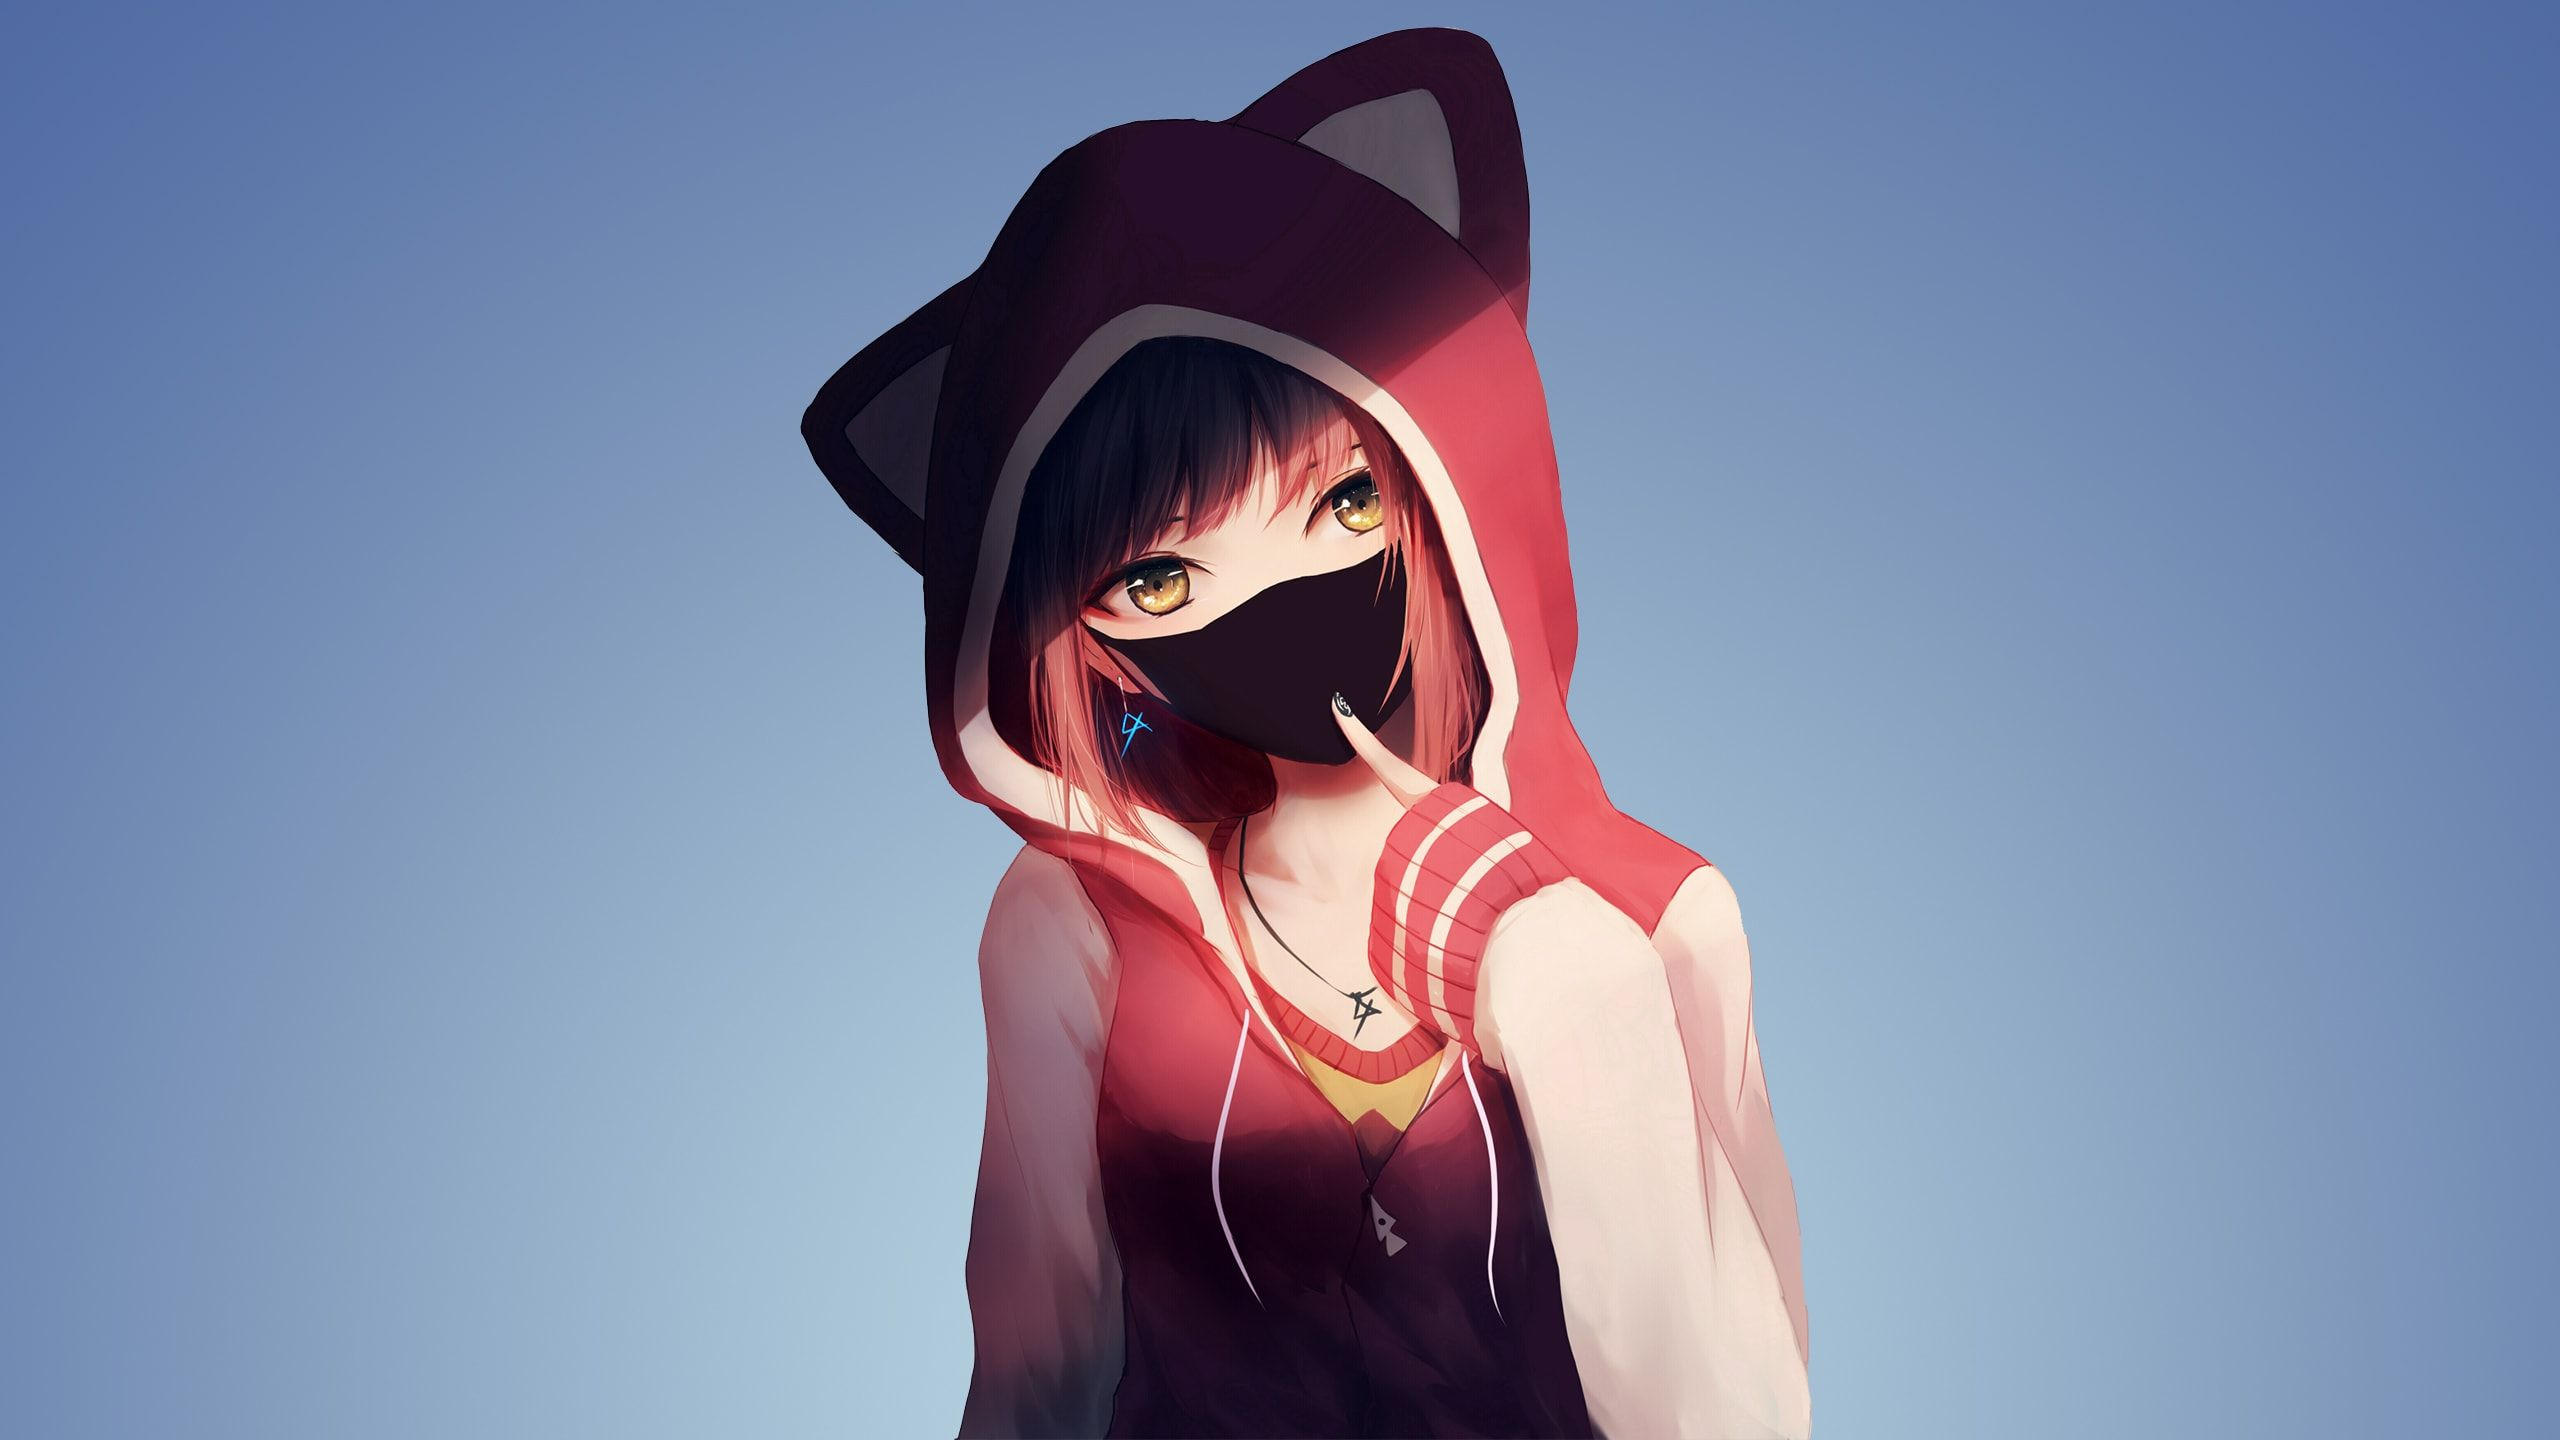 Anime Hoodie Wallpapers - Top Free Anime Hoodie Backgrounds